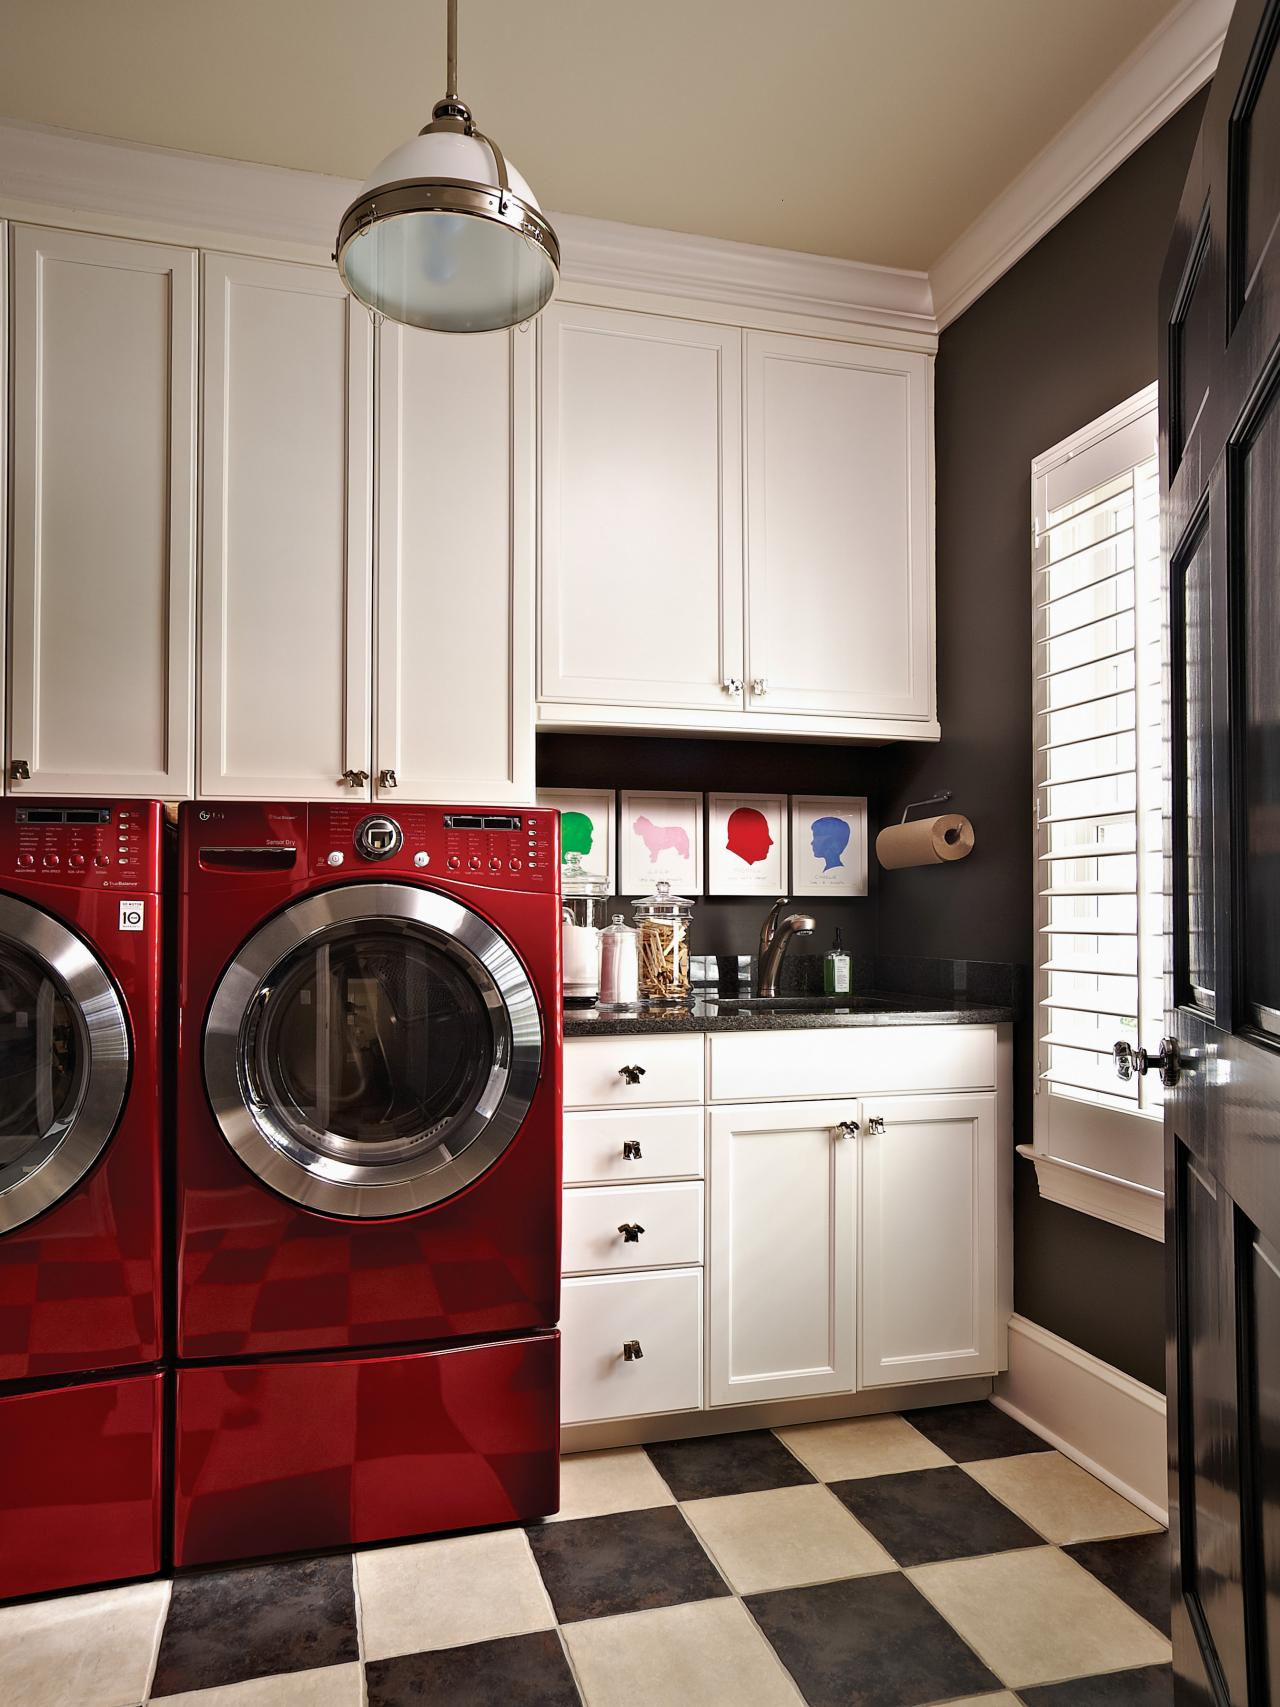 ... Laundry Room Designs  Decorating and Design Ideas for Interior Rooms